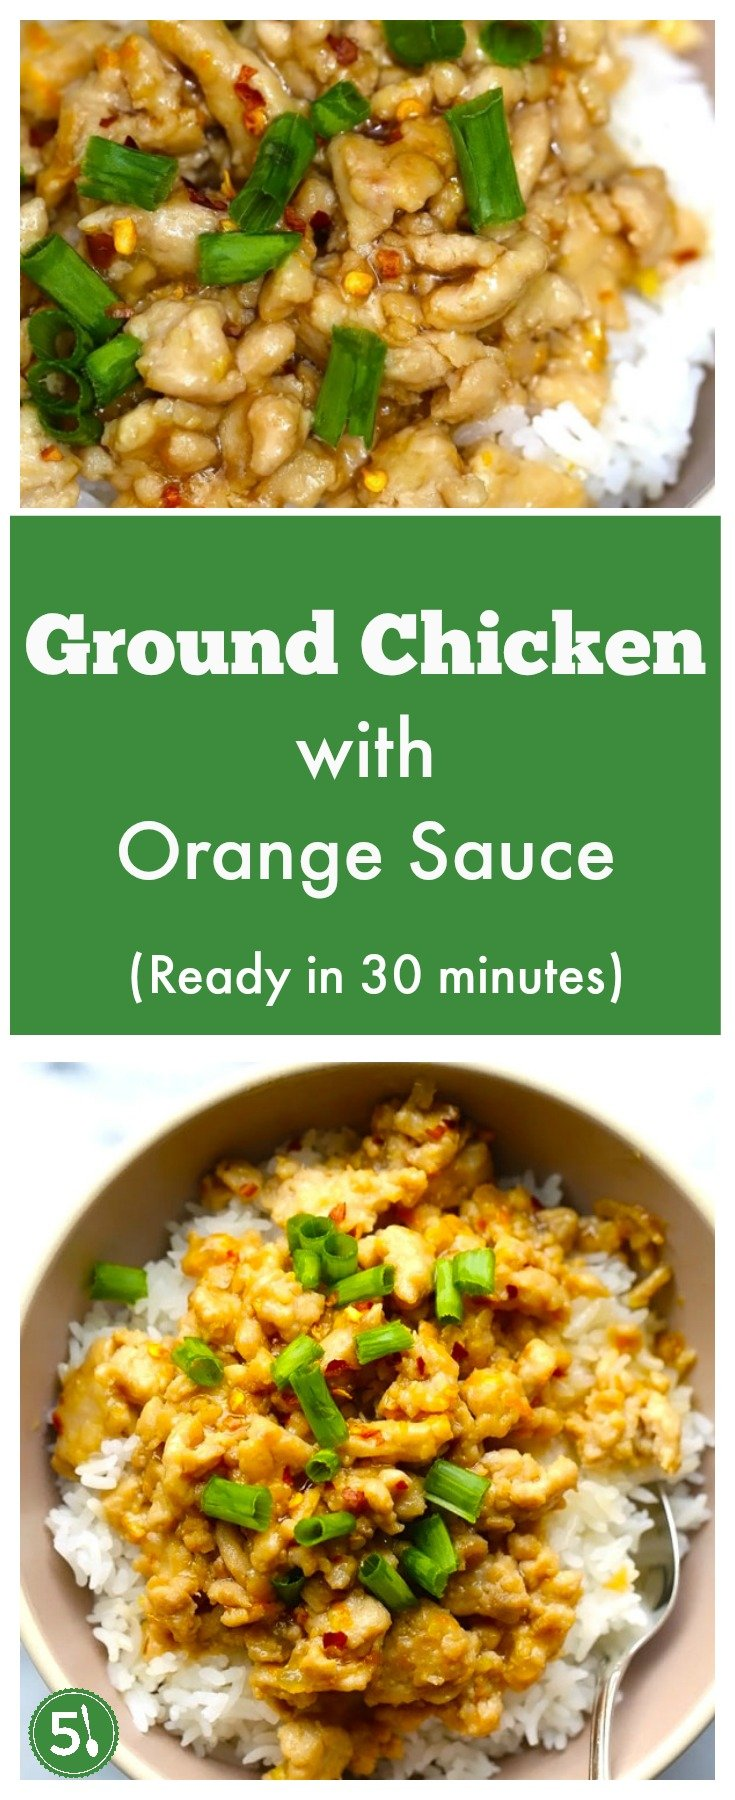 Easy and healthy ground chicken recipe that is perfect for those rushed midweek dinners.  Only takes 30 minutes to create this delicious dinner.